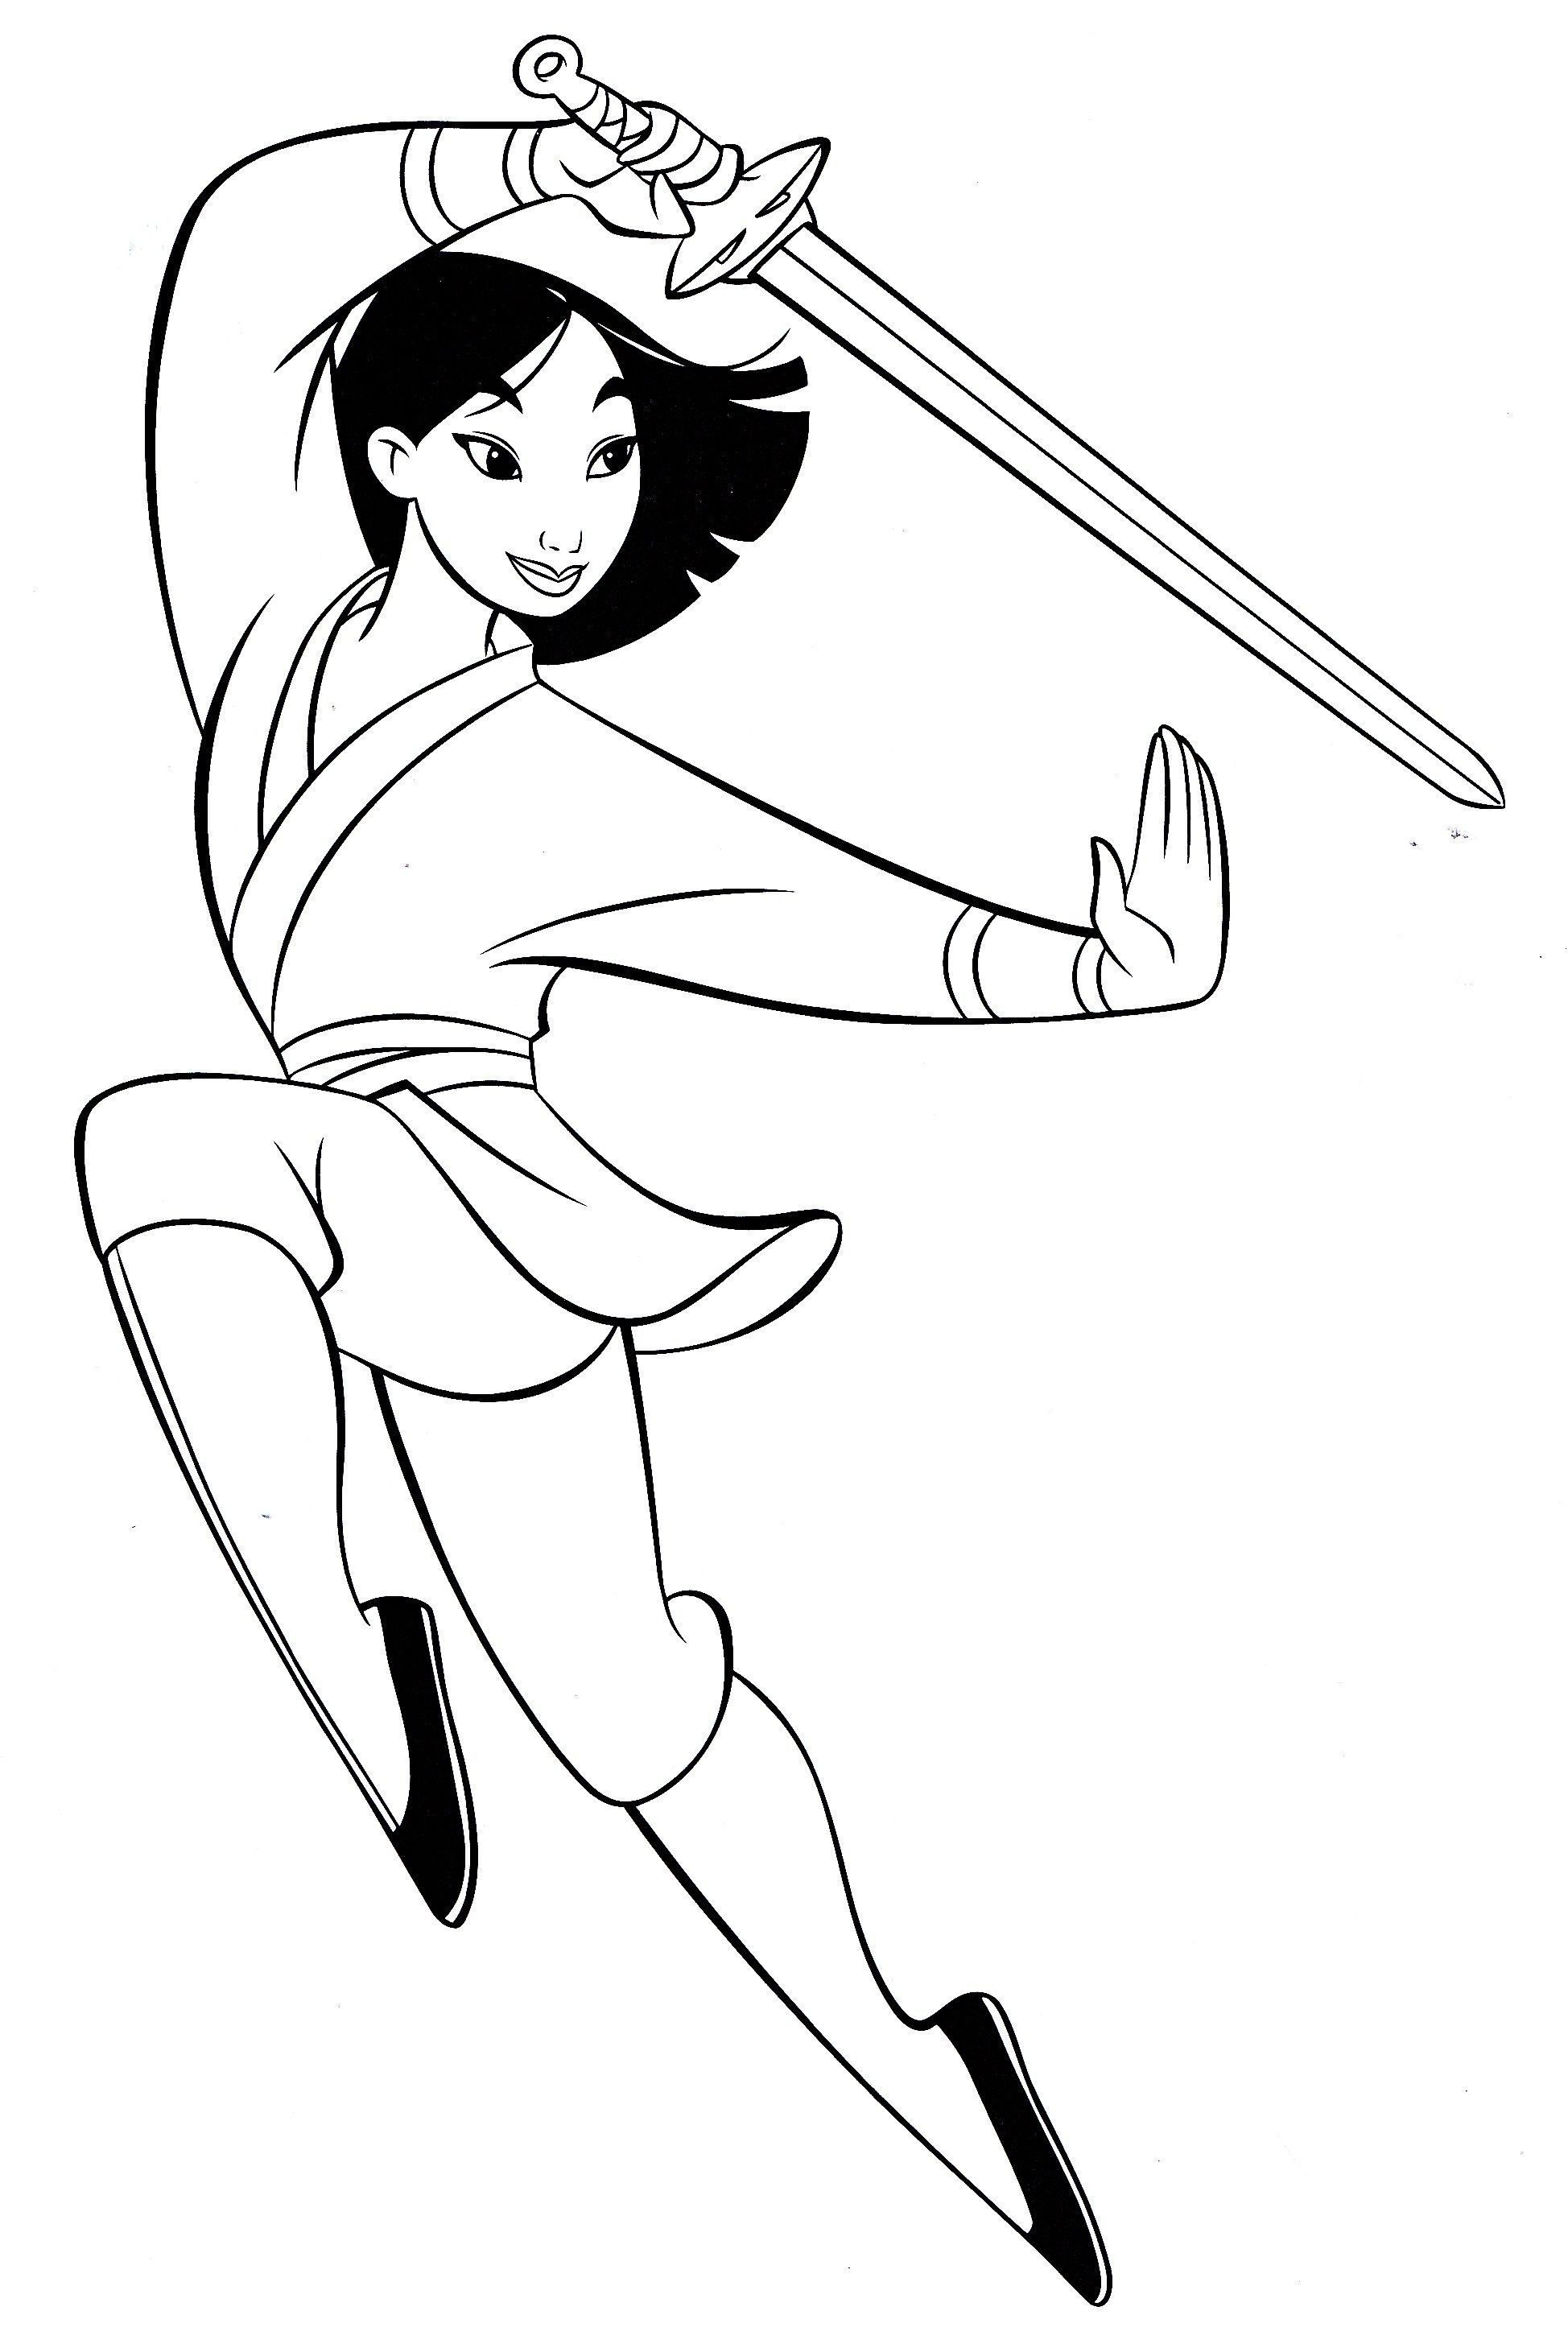 Disney Mulan Coloring Pages Coloring Pages Allow Kids To Accompany Their Favor Disney Princess Coloring Pages Princess Coloring Pages Disney Princess Colors